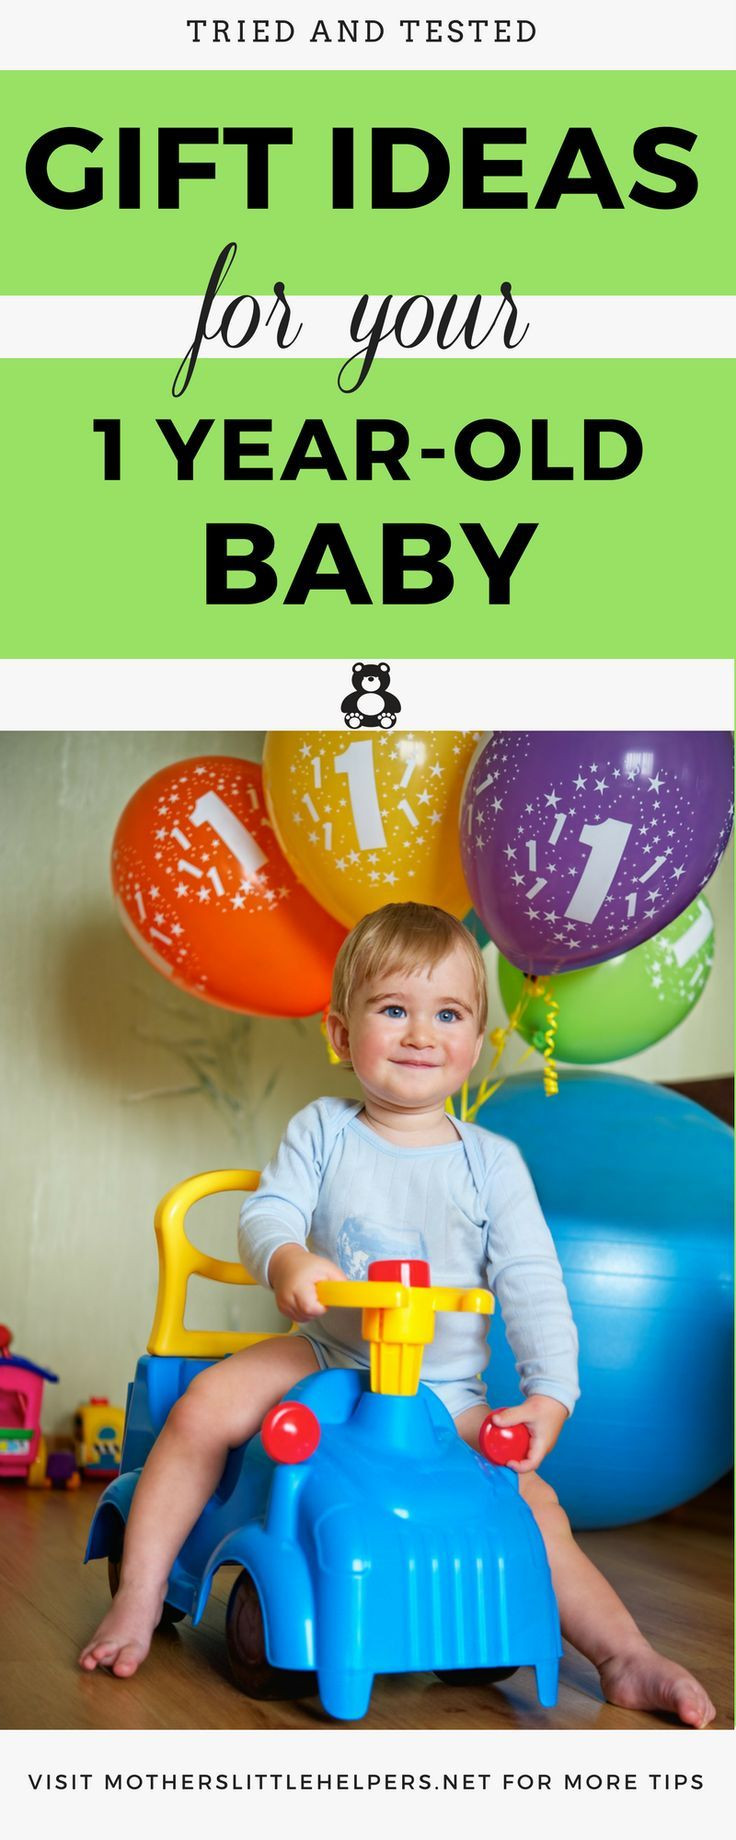 Best ideas about Baby First Birthday Gift Ideas For Her . Save or Pin Best 25 Gift ideas for 1 year old girl ideas on Pinterest Now.